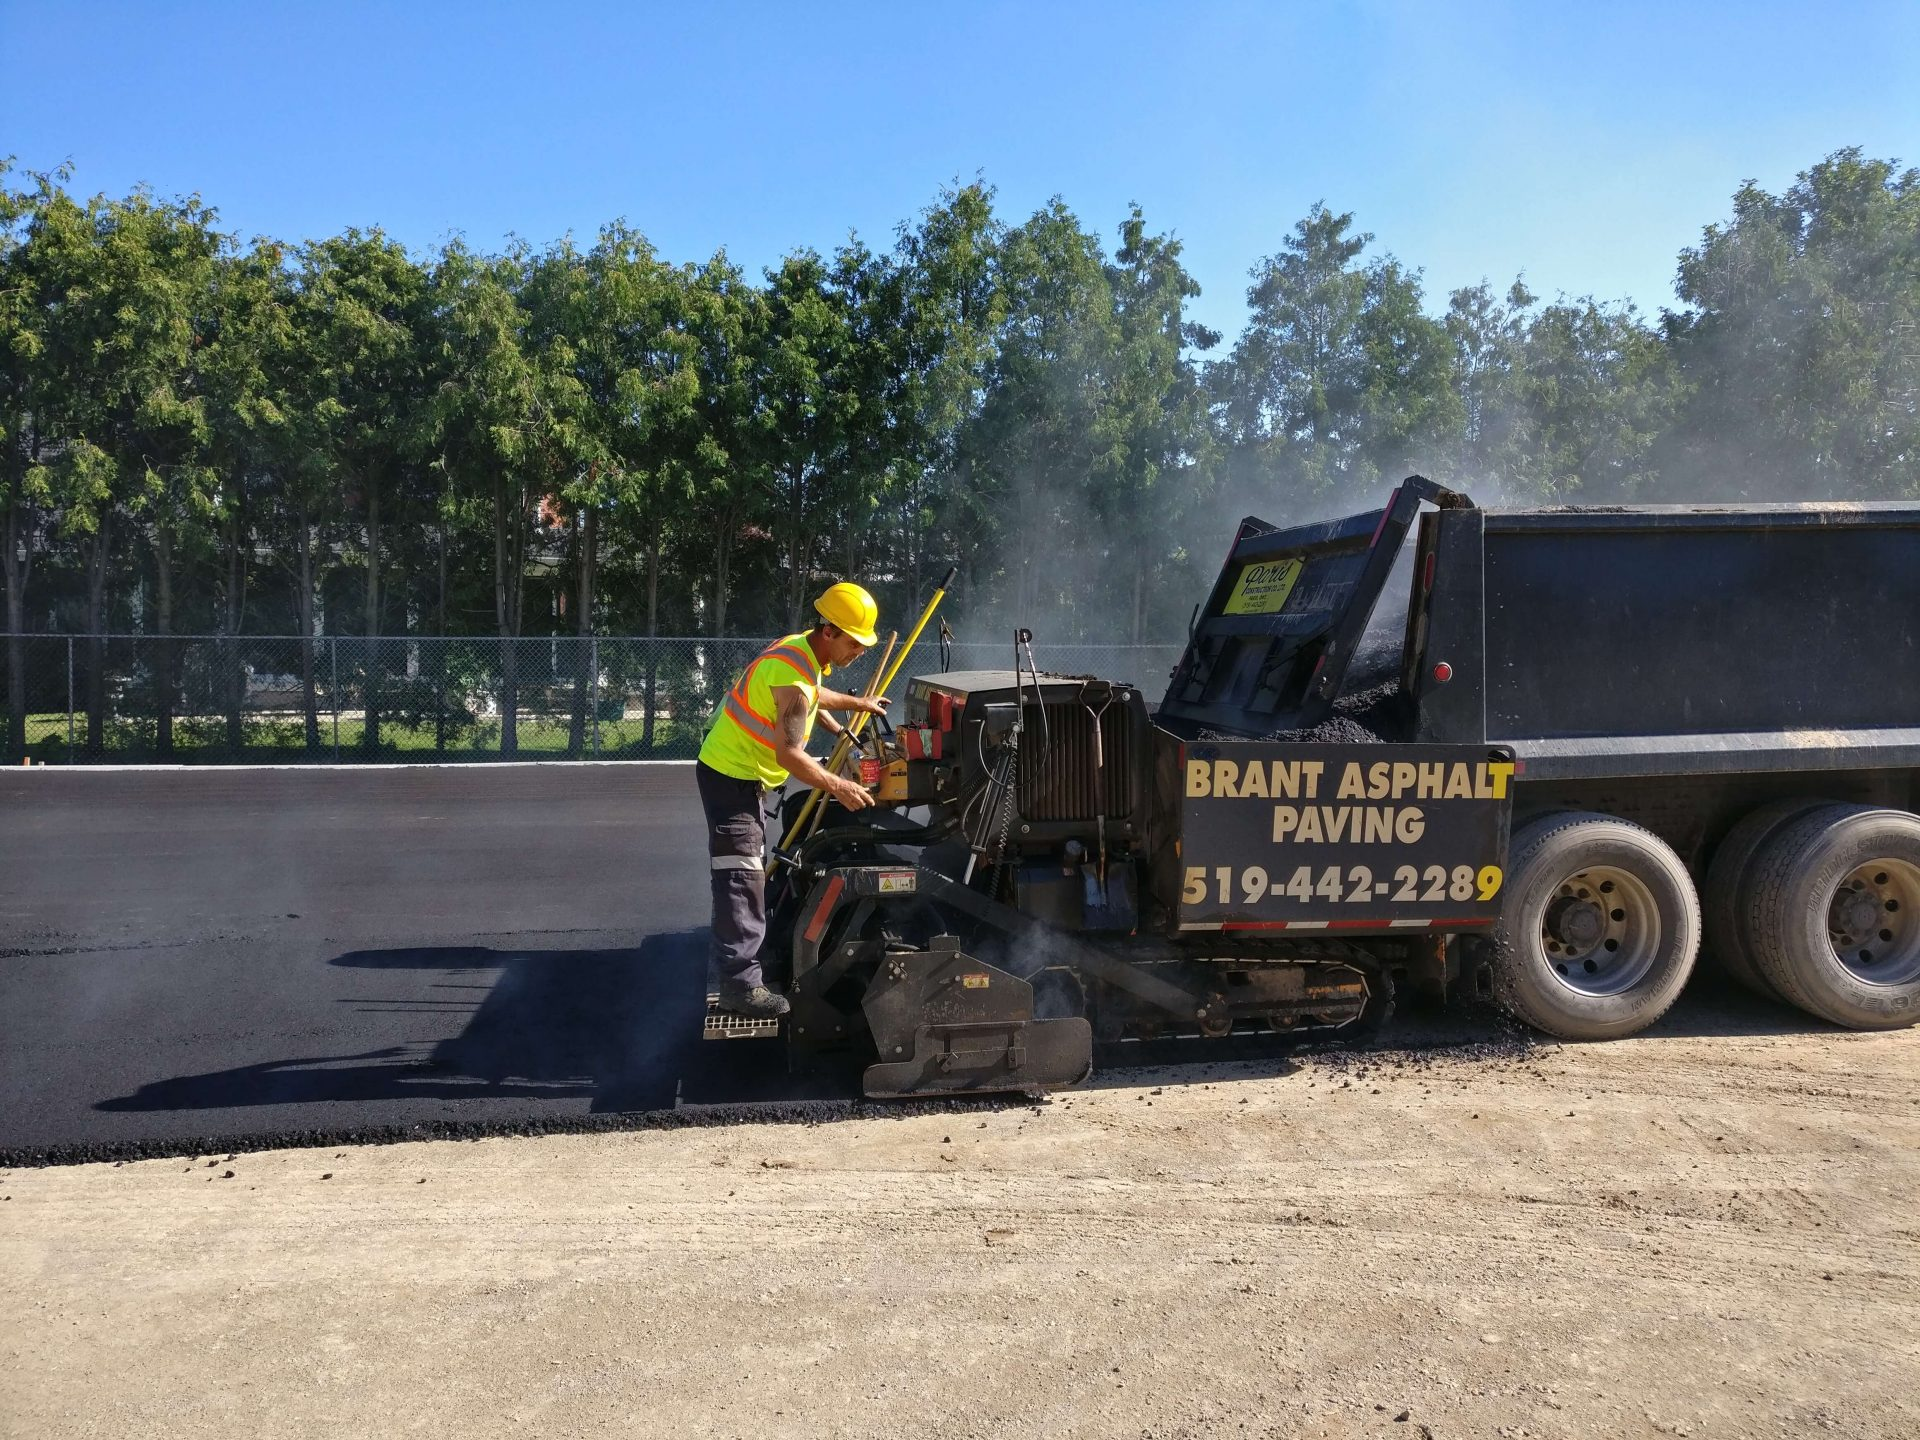 Asphalt pavers on construction truck